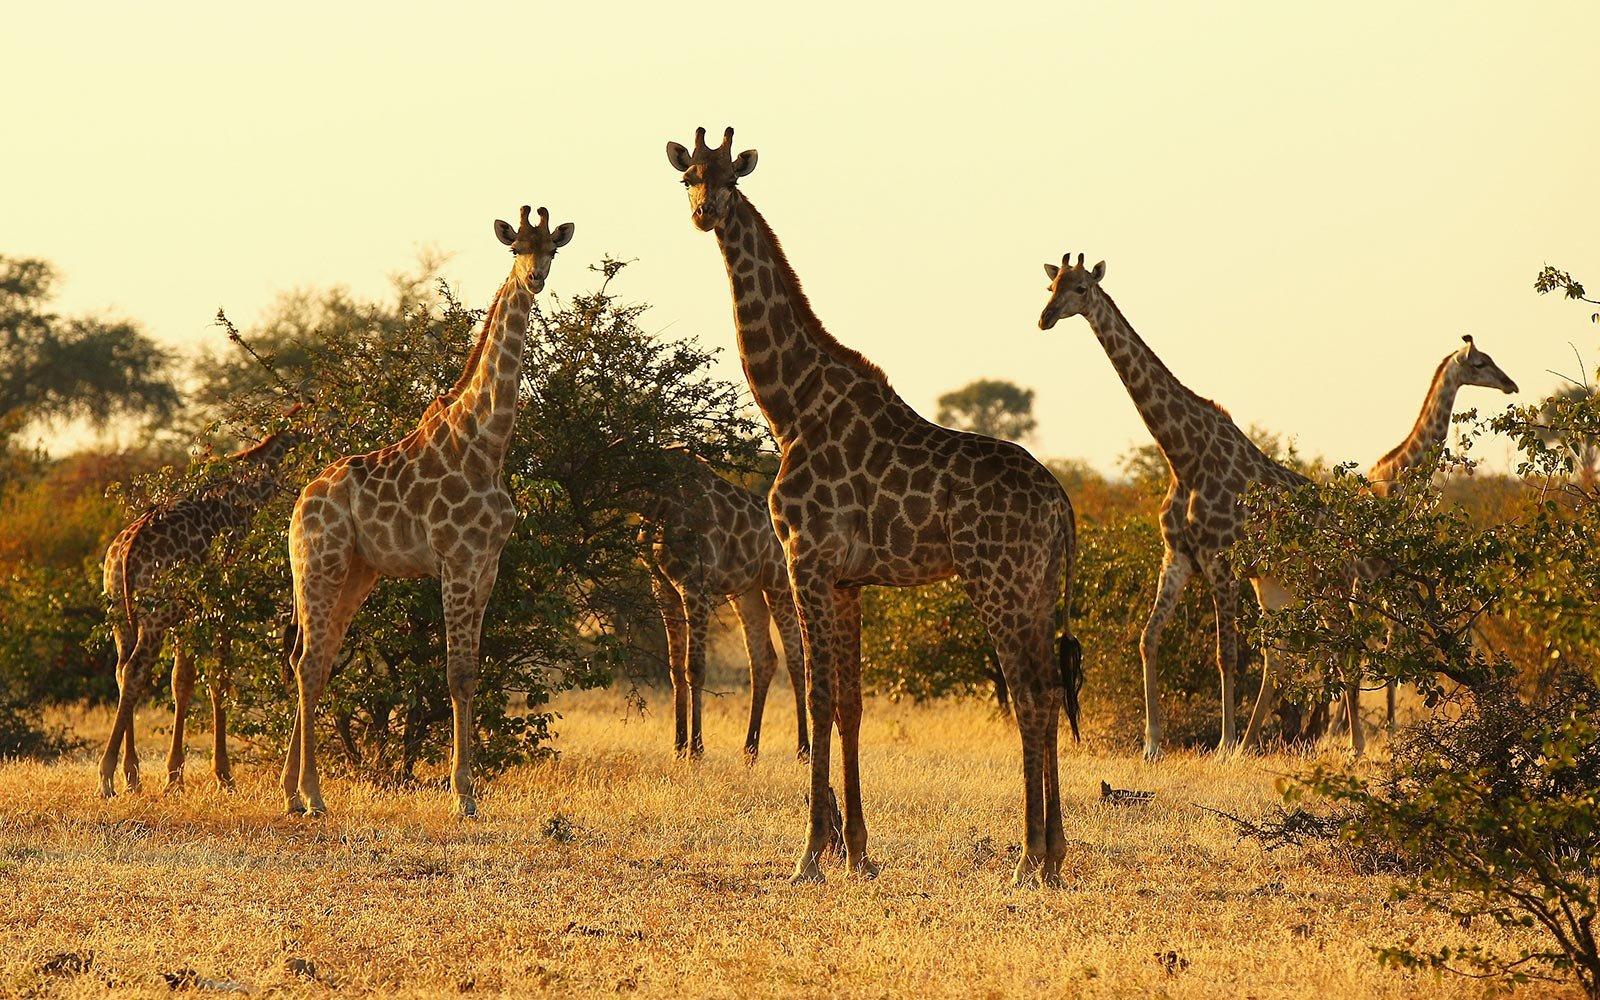 Giraffe Is Now Vulnerable to Extinction Following Population Decline